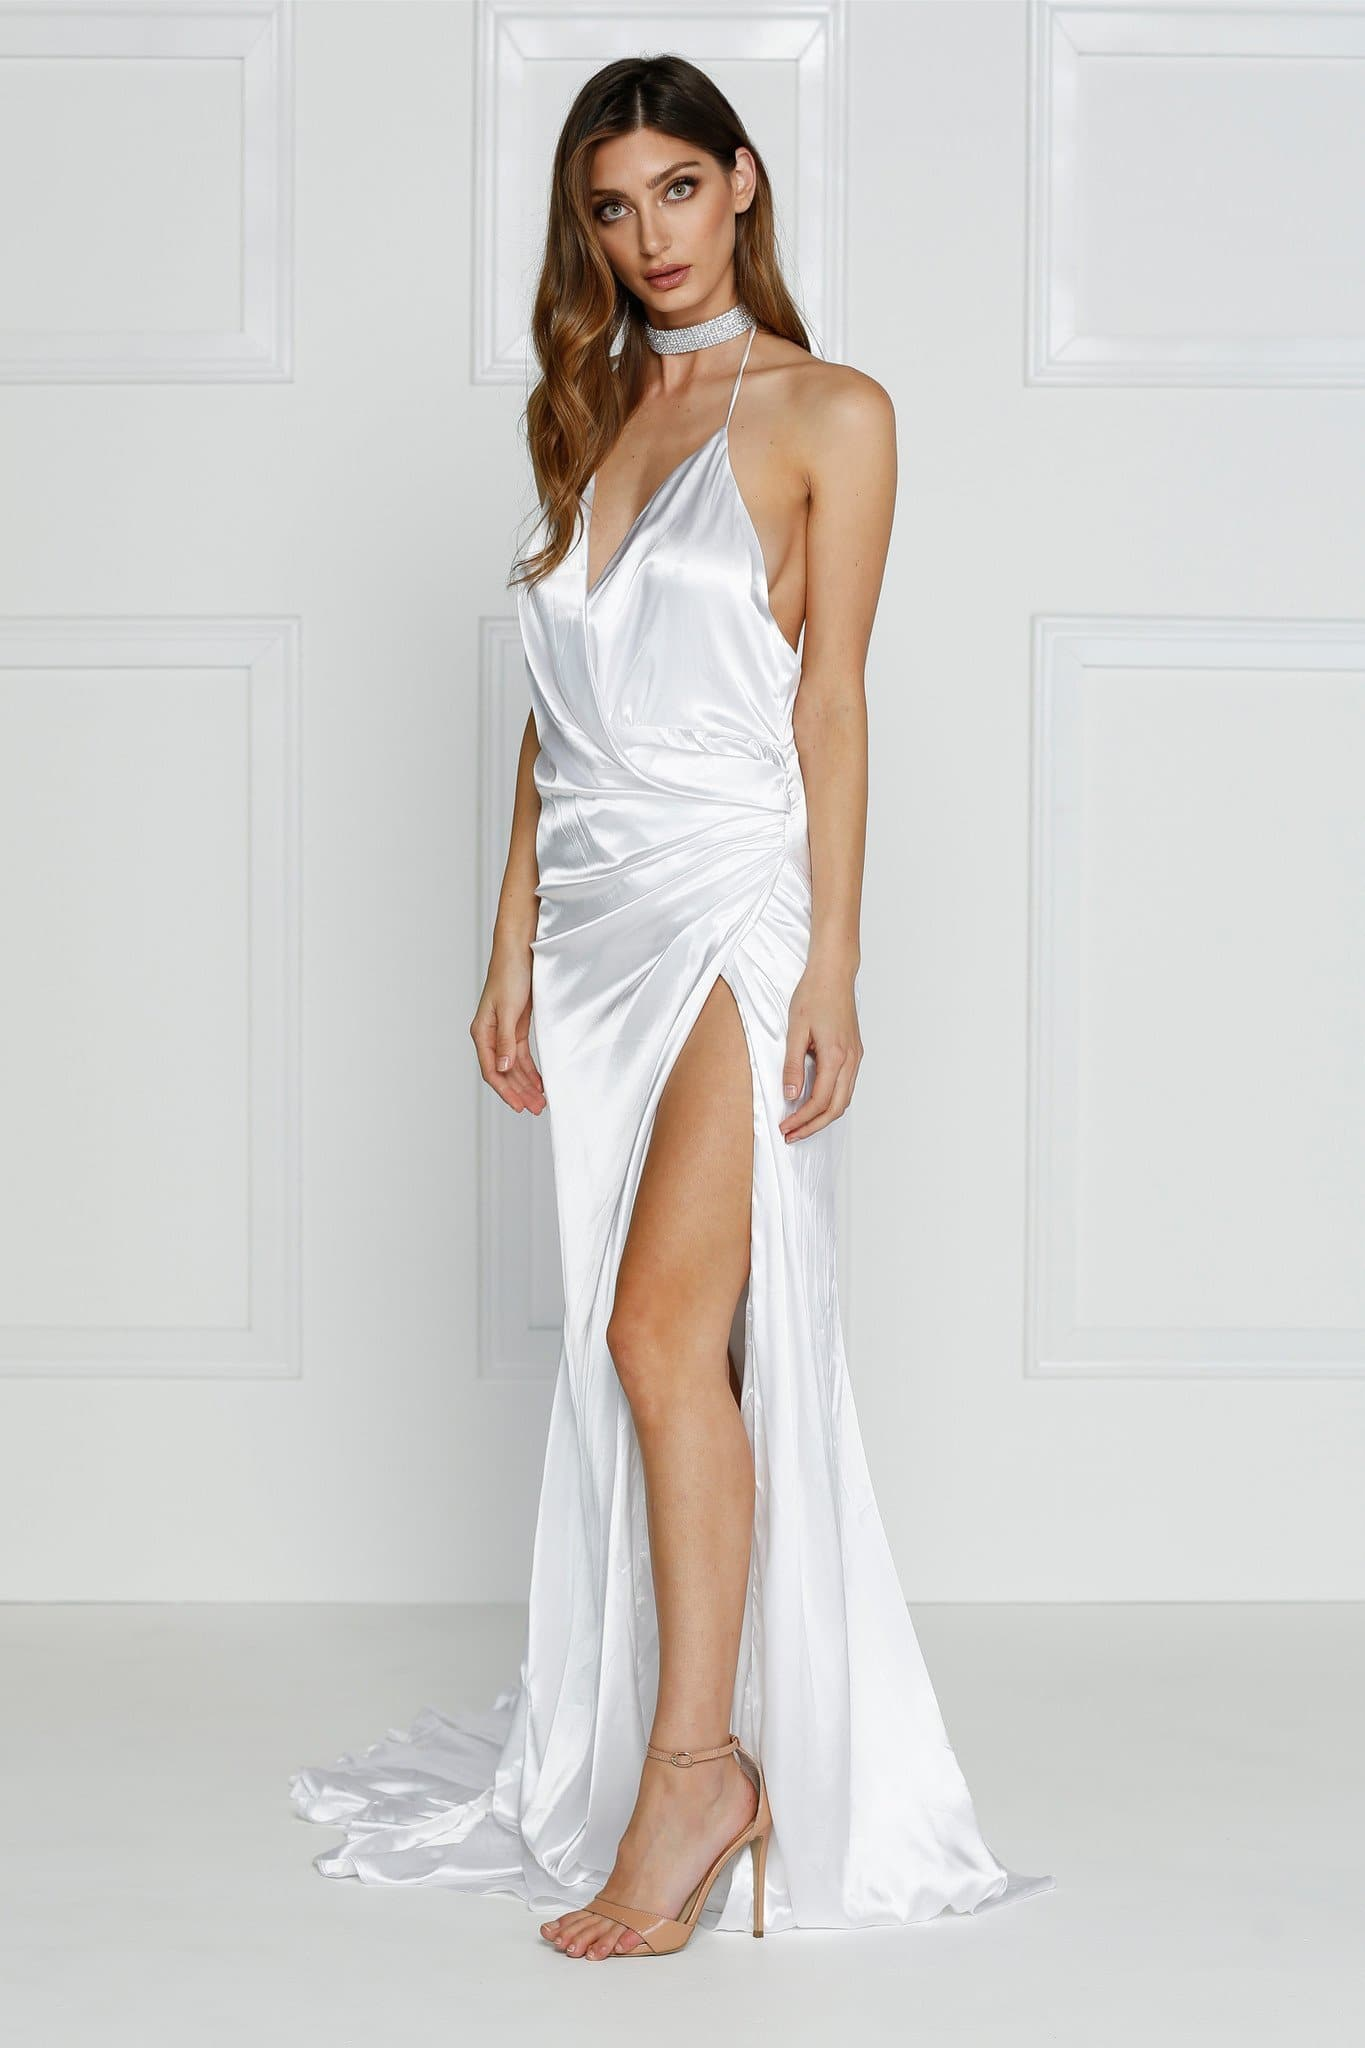 Guinevere - White Backless Satin Gown with Side Slit & Ruched Detail ...